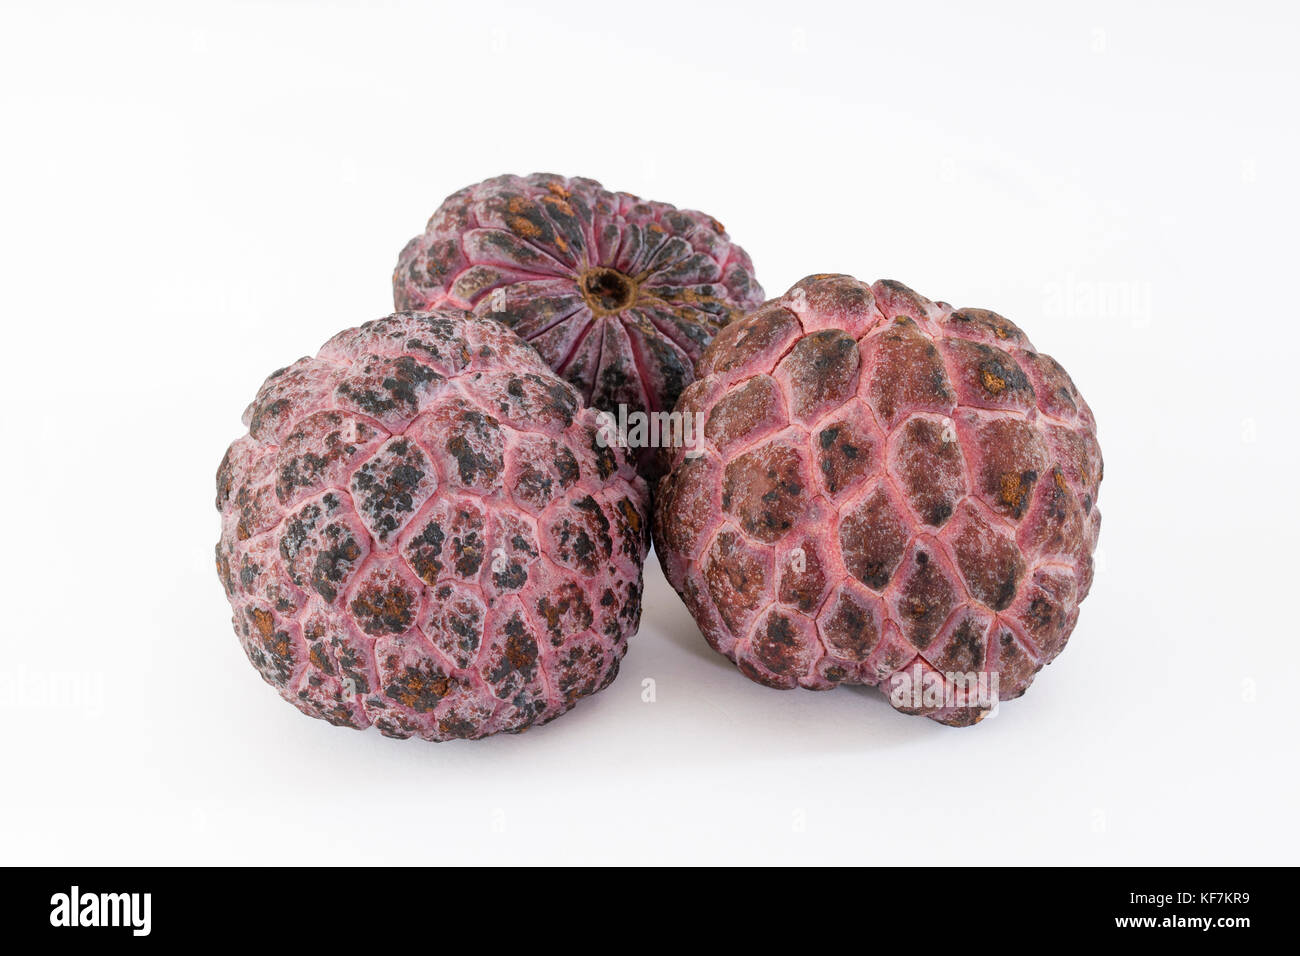 how to eat red custard apple